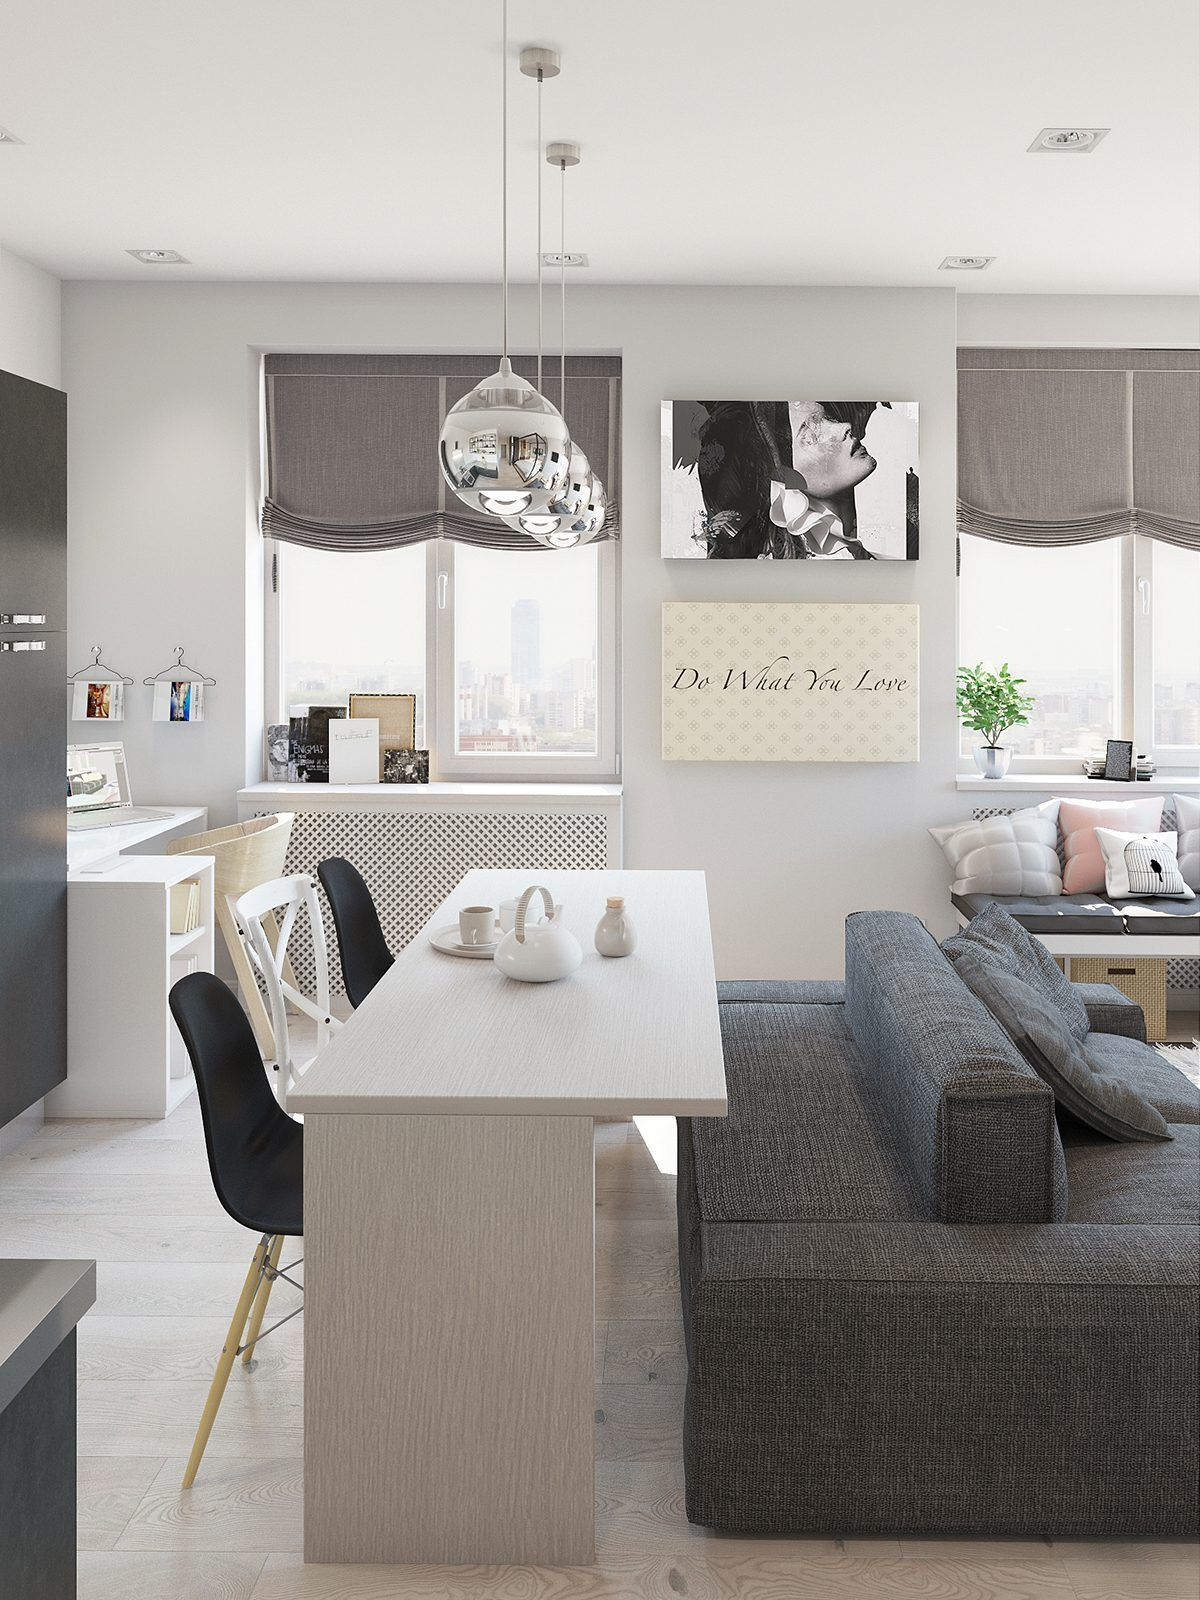 12+] Popular Apartment Interior Design To Look Awesome In Your